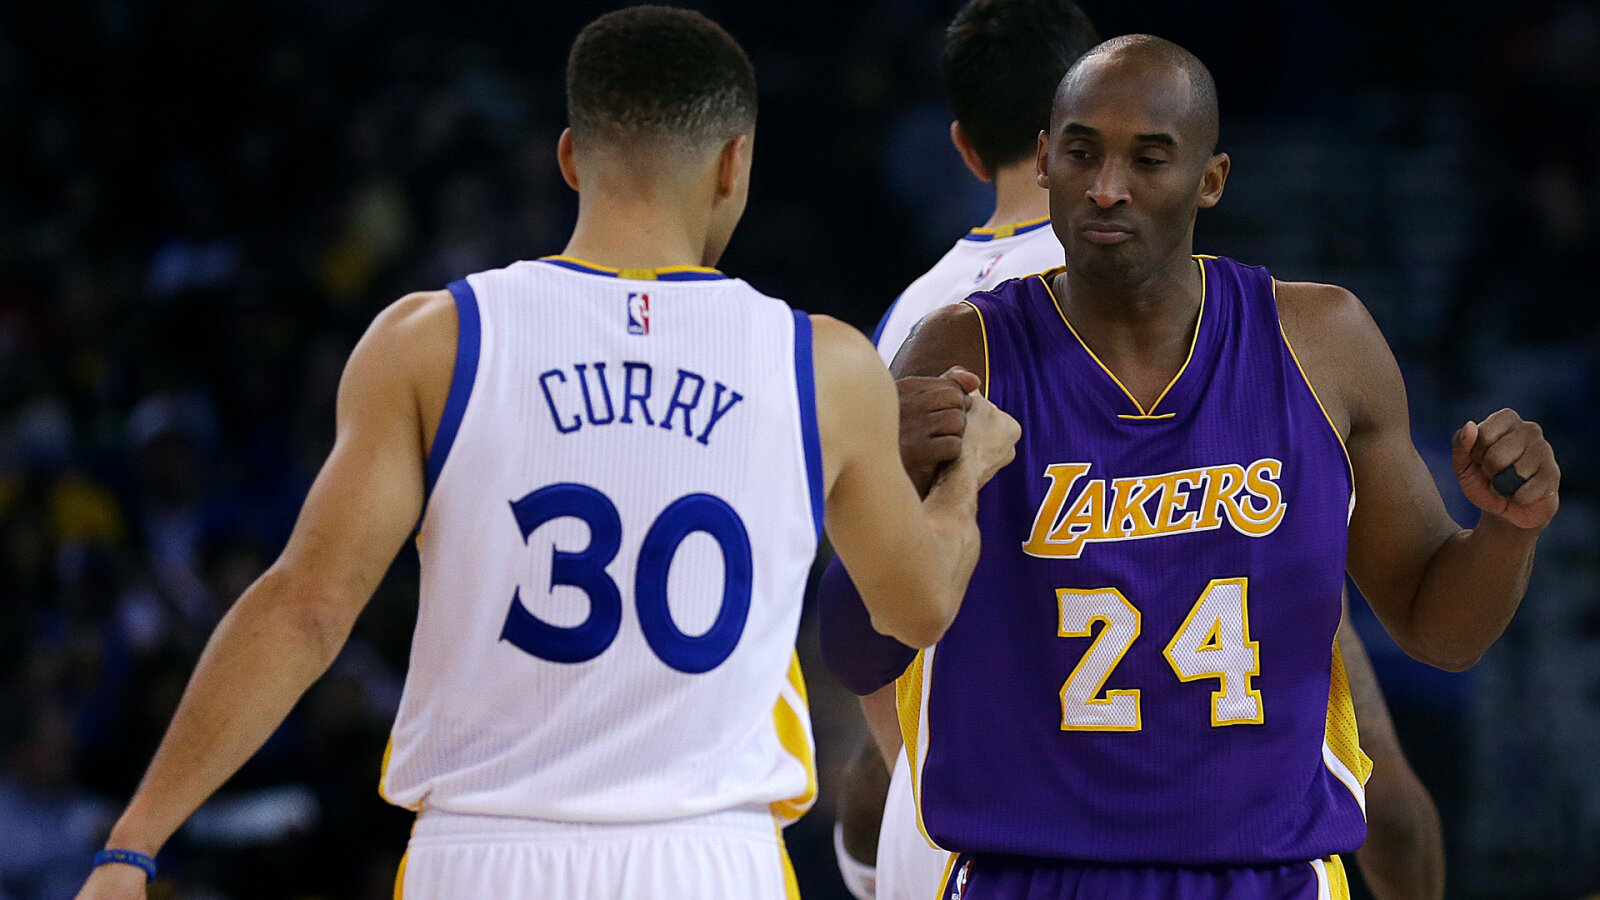 'The Journey is the Dream': Steph Curry Quotes Kobe Bryant to Inspire Young Athletes